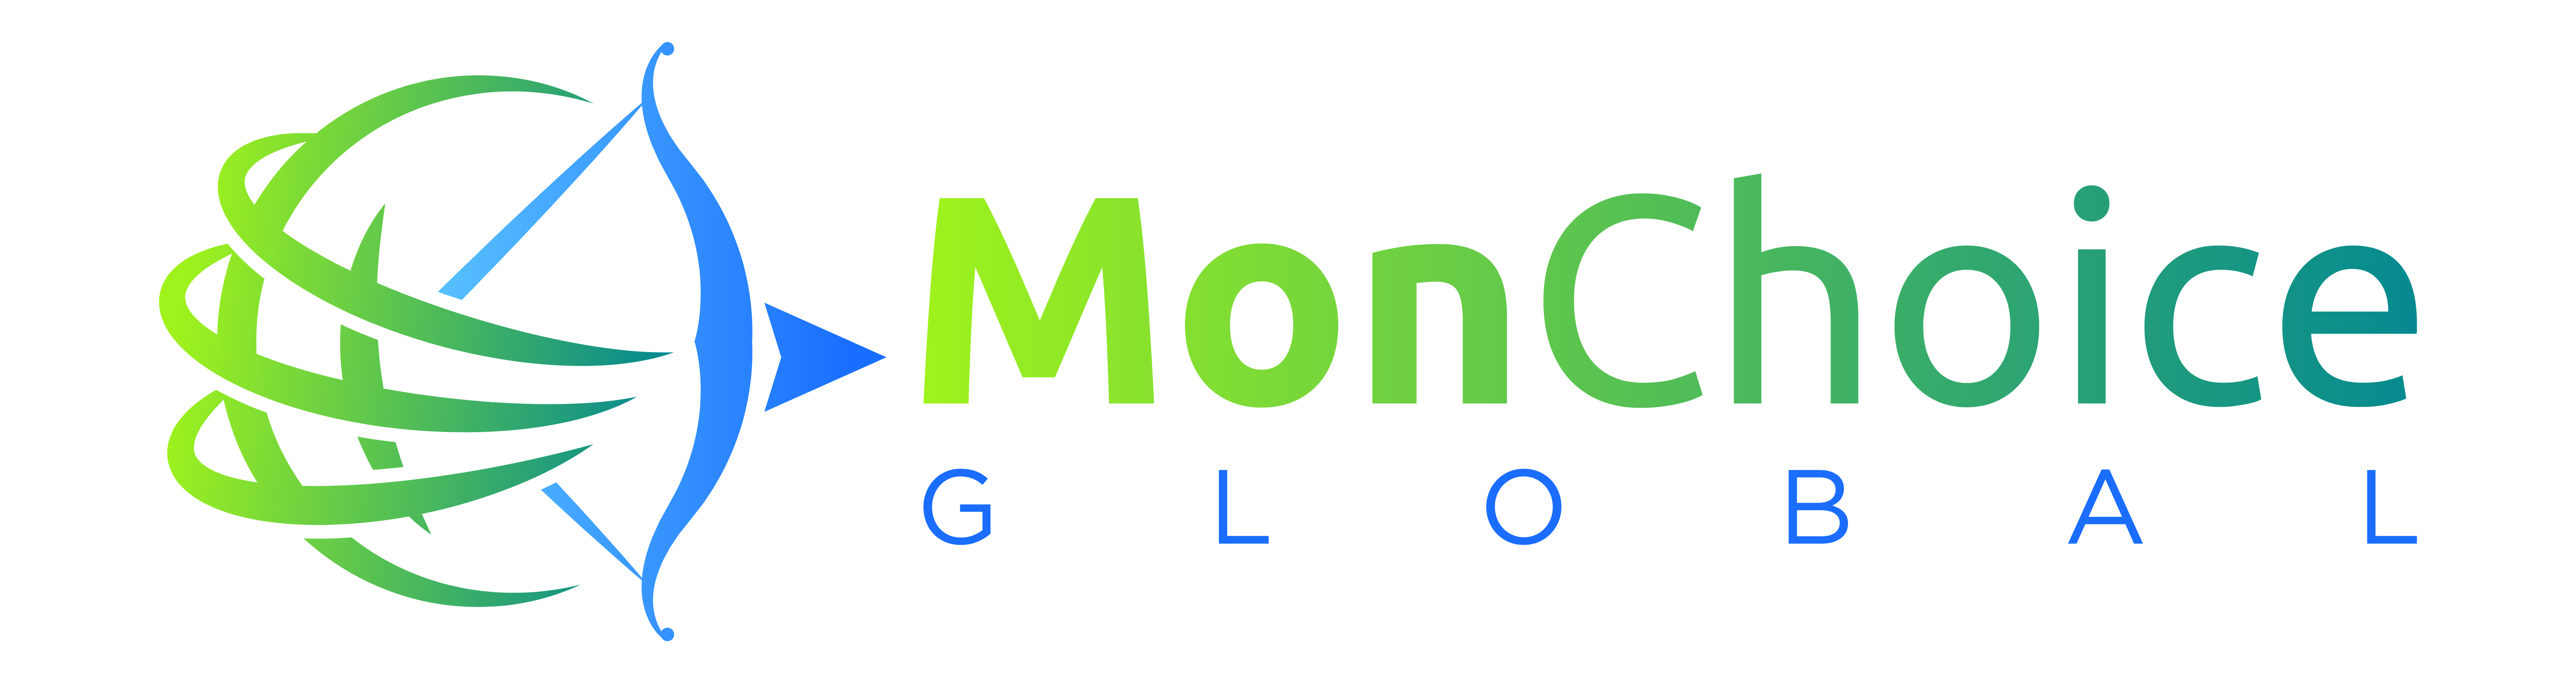 Introducing MonChoiceGlobal, a Mongolian, global e-commerce marketplace for Unique, Natural Products.